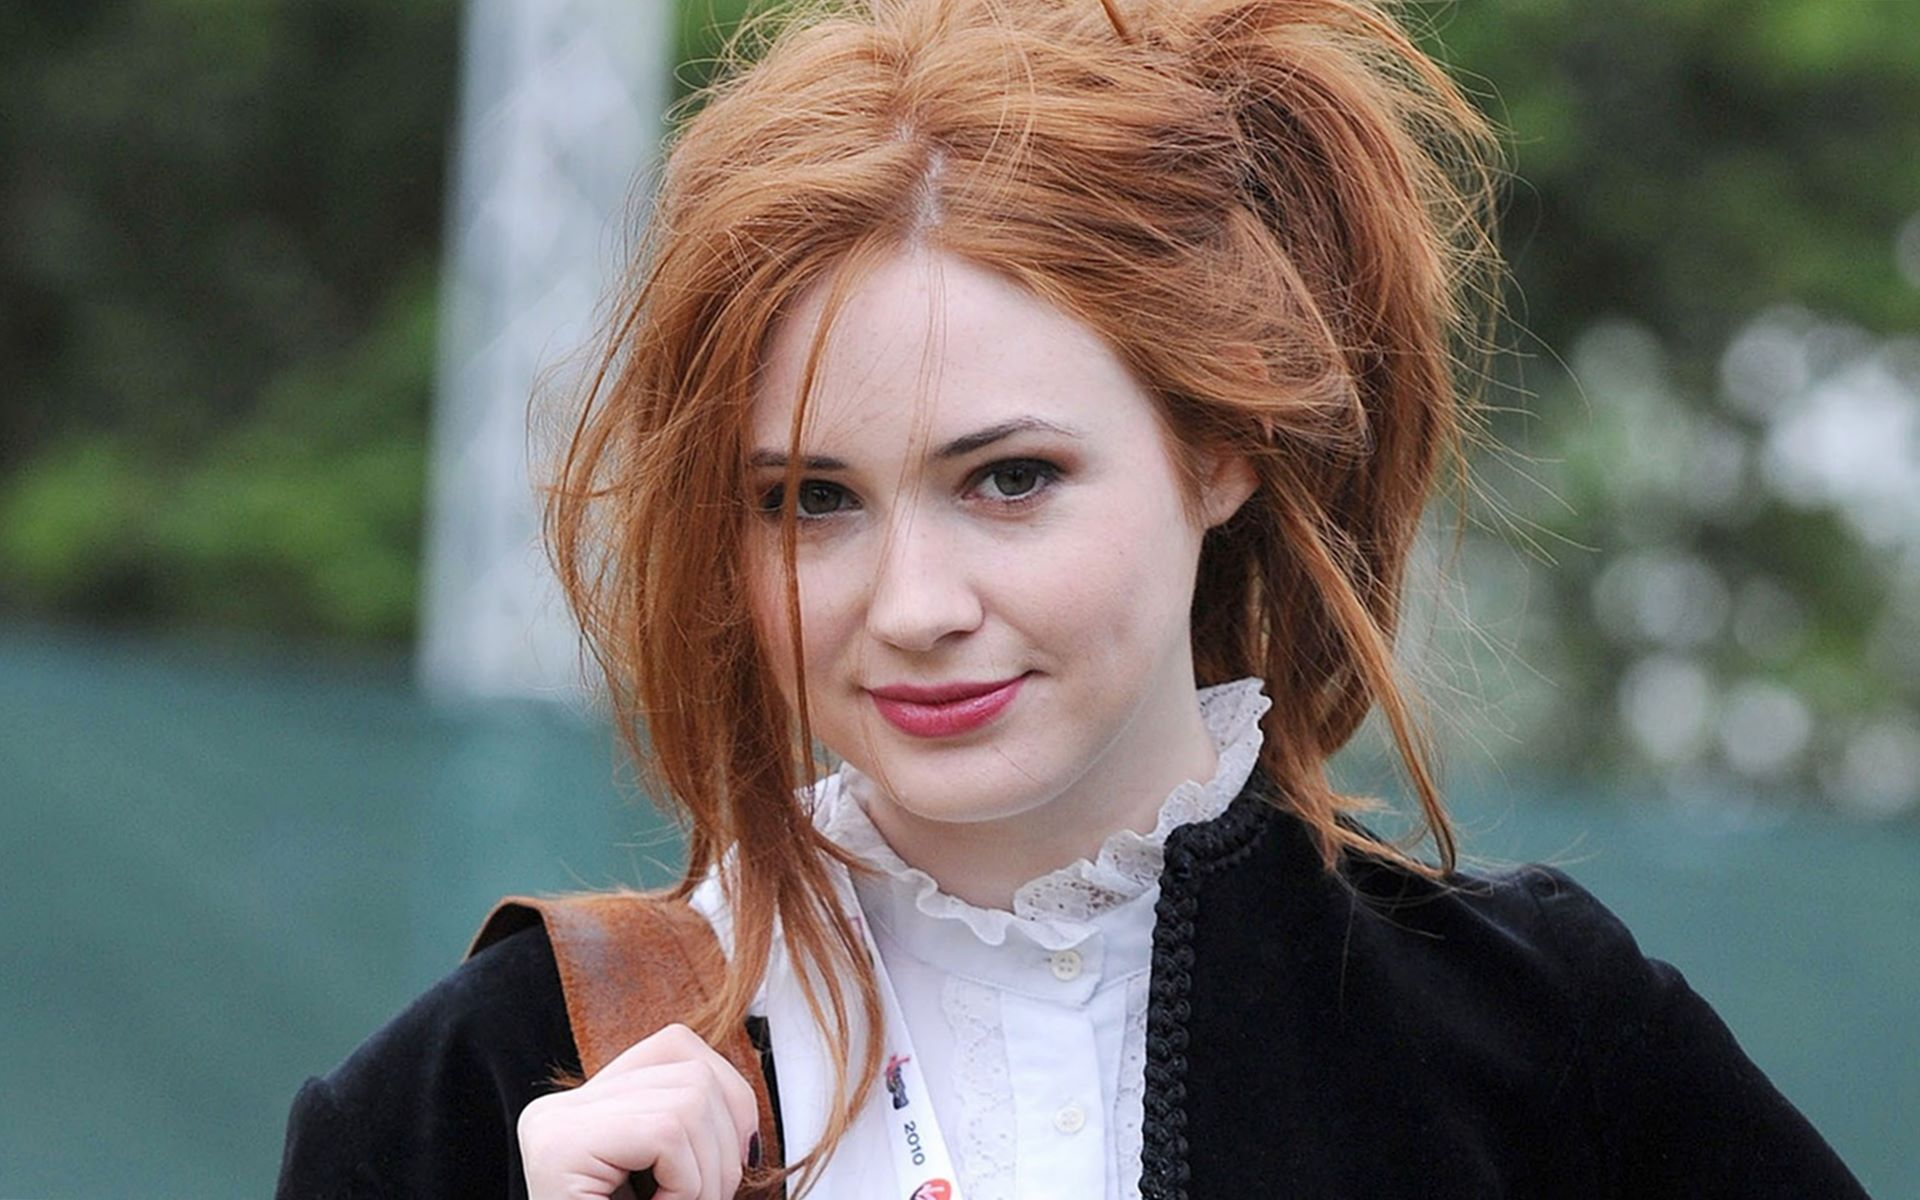 Karen gillan begins filming tupperware party her directorial debut